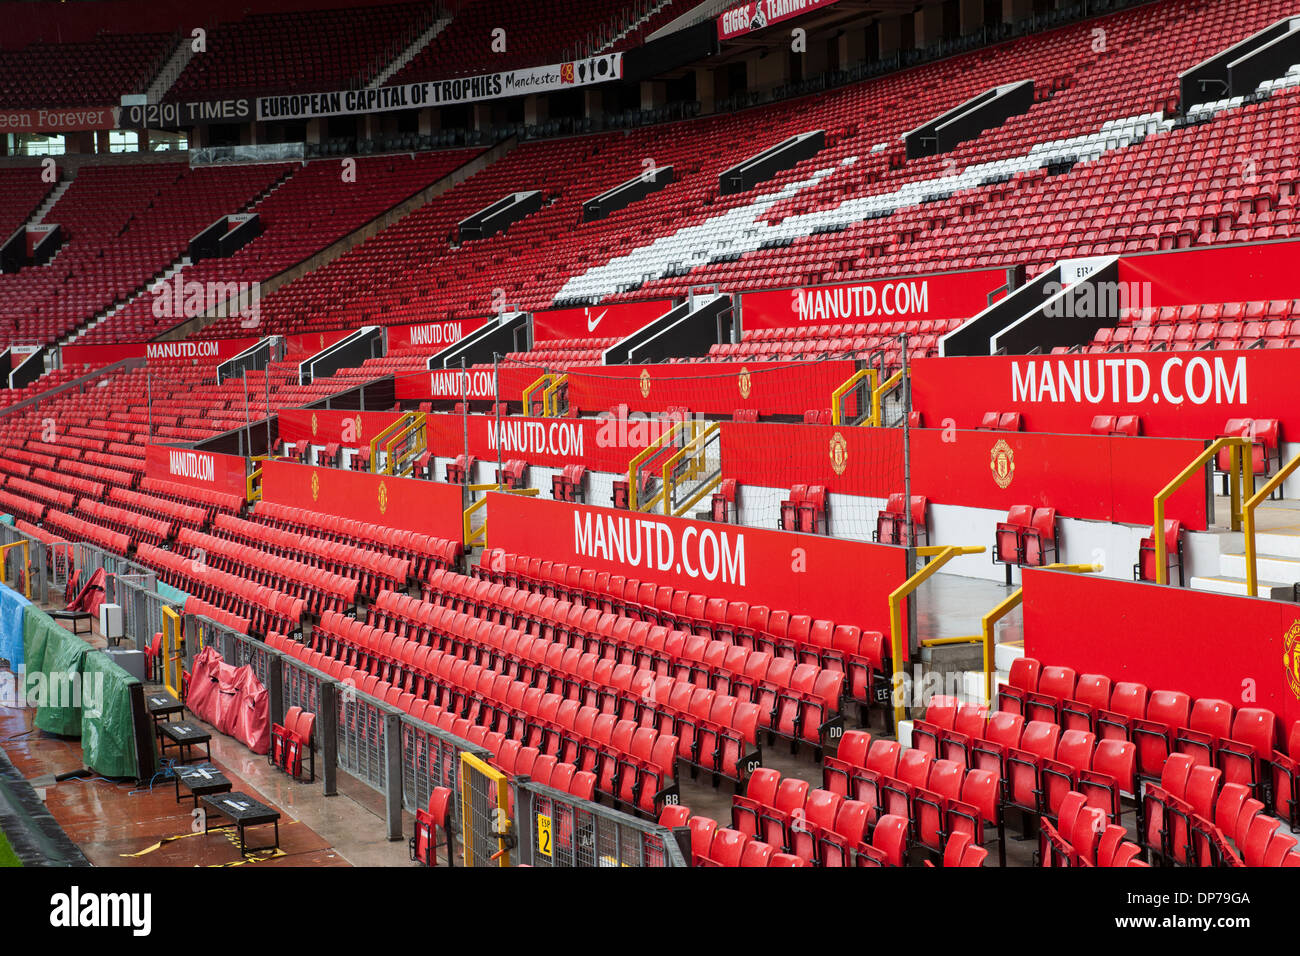 Old Trafford, home of Manchester United Football Club, Manchester, England, UK.; view of stadium seating. - Stock Image